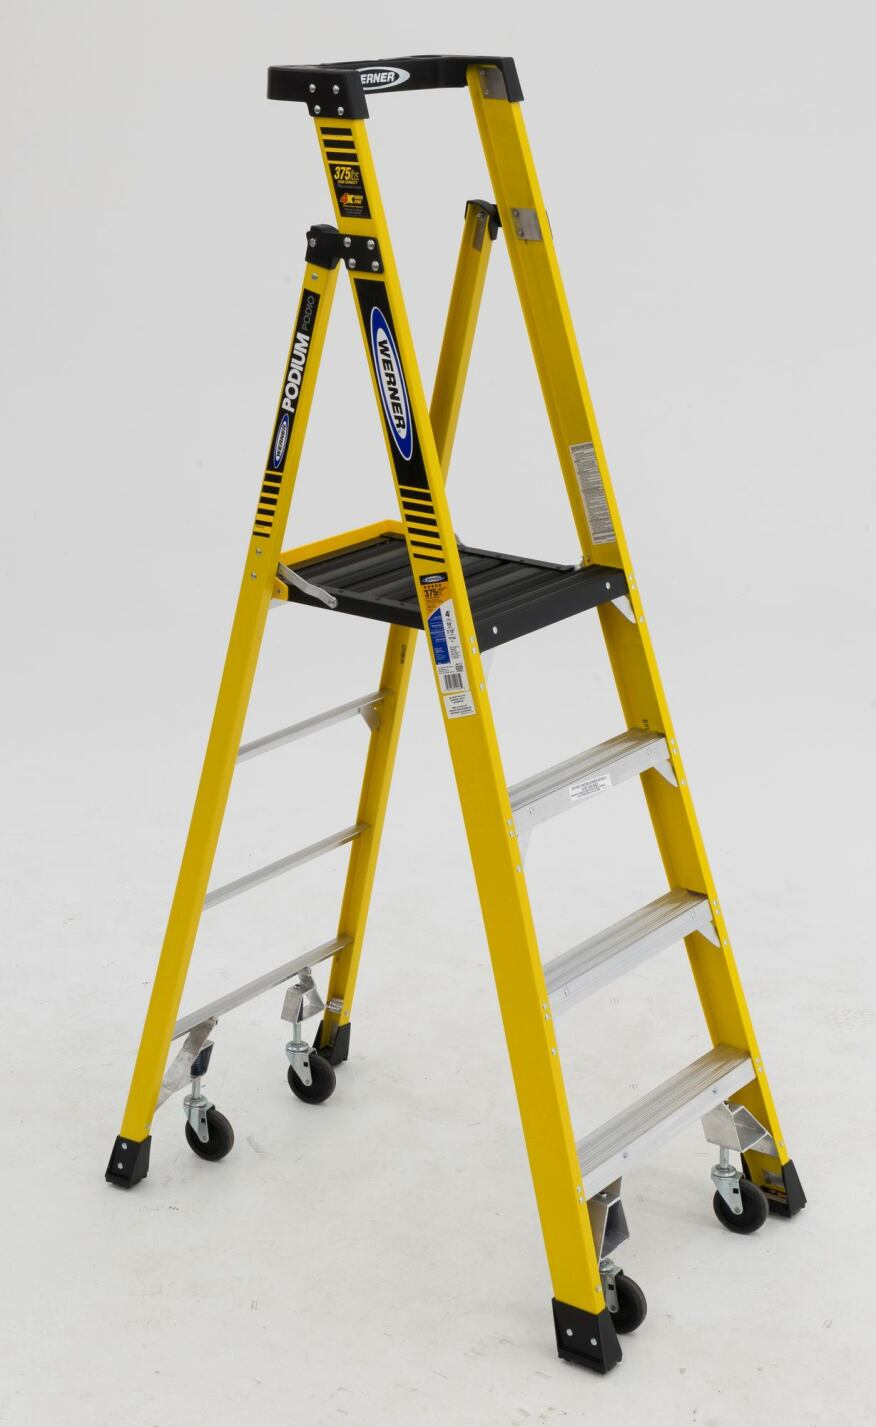 Werner Podium Ladders Move Easily With New Casters Jlc